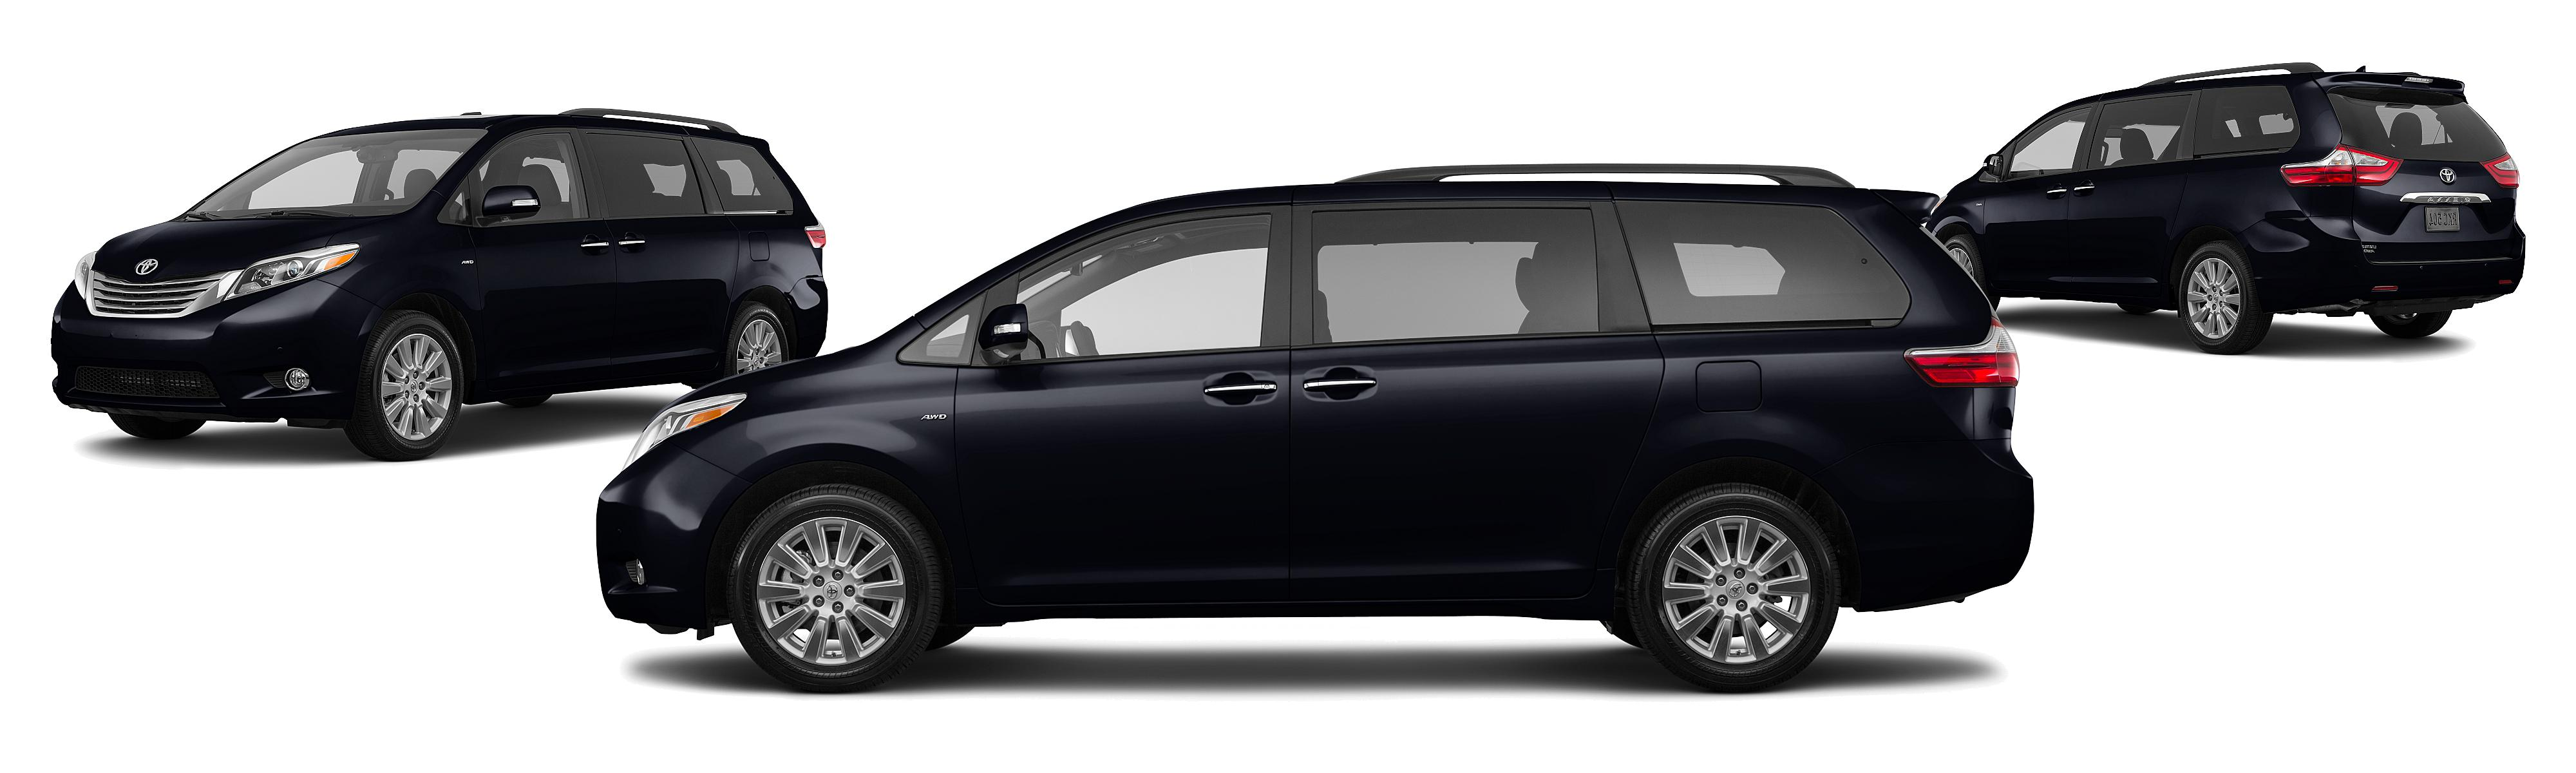 2017 Toyota Sienna Awd Le 7 Penger 4dr Mini Van Research Groovecar